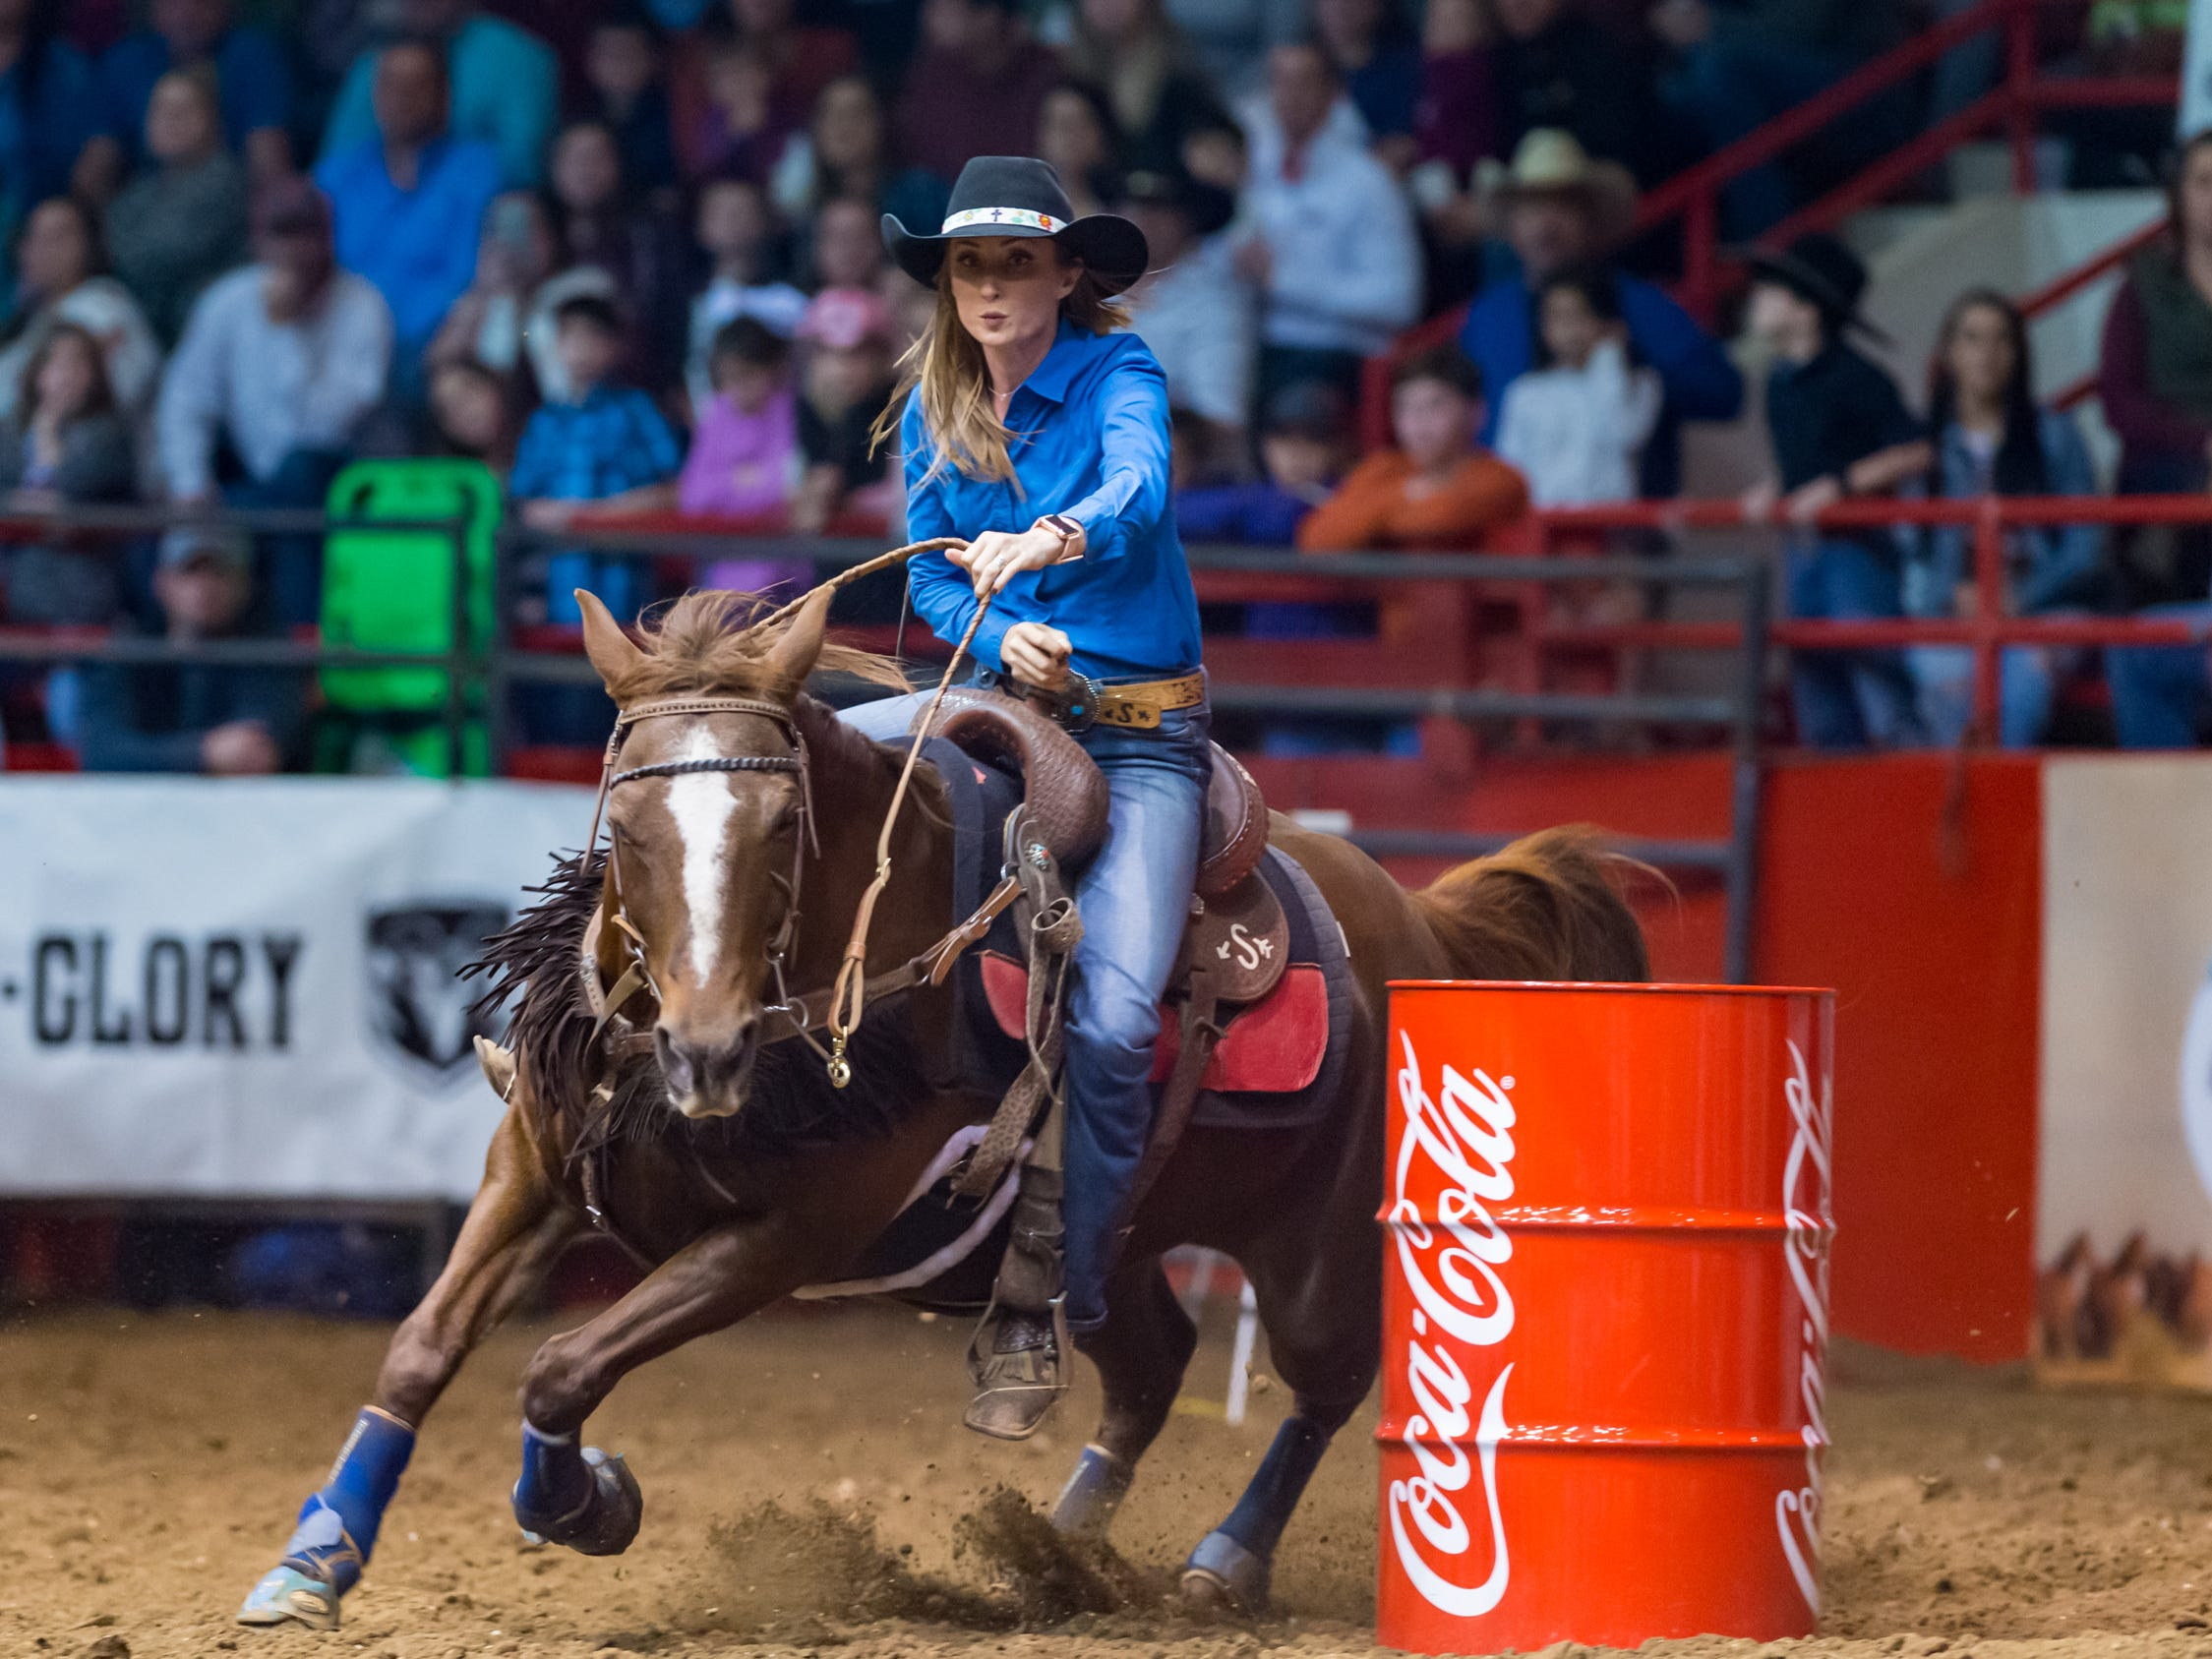 Katie Jo Smart at the Mid Winter Fair and Pro Rodeo at Blackham Coliseum. Saturday, Jan. 12, 2019.